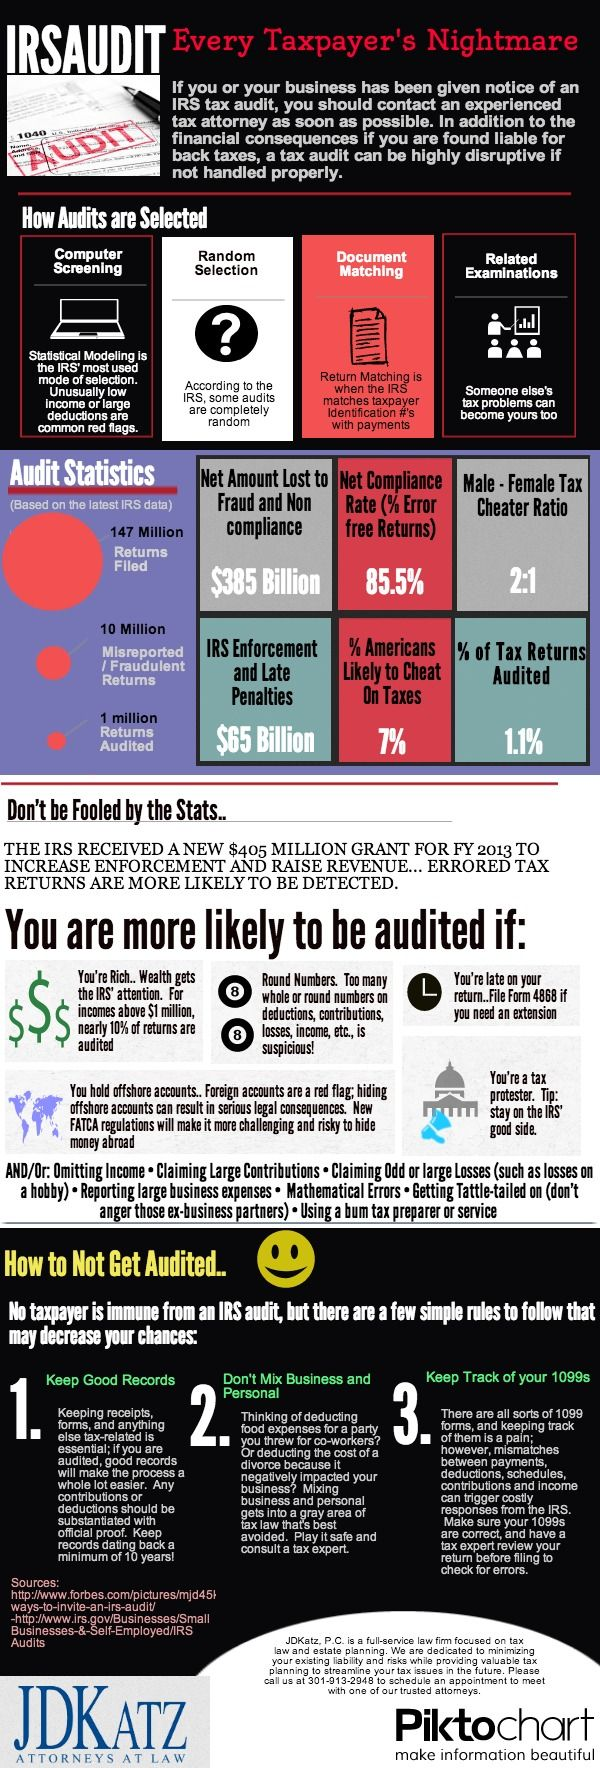 What are the Chances of getting Audited by the IRS